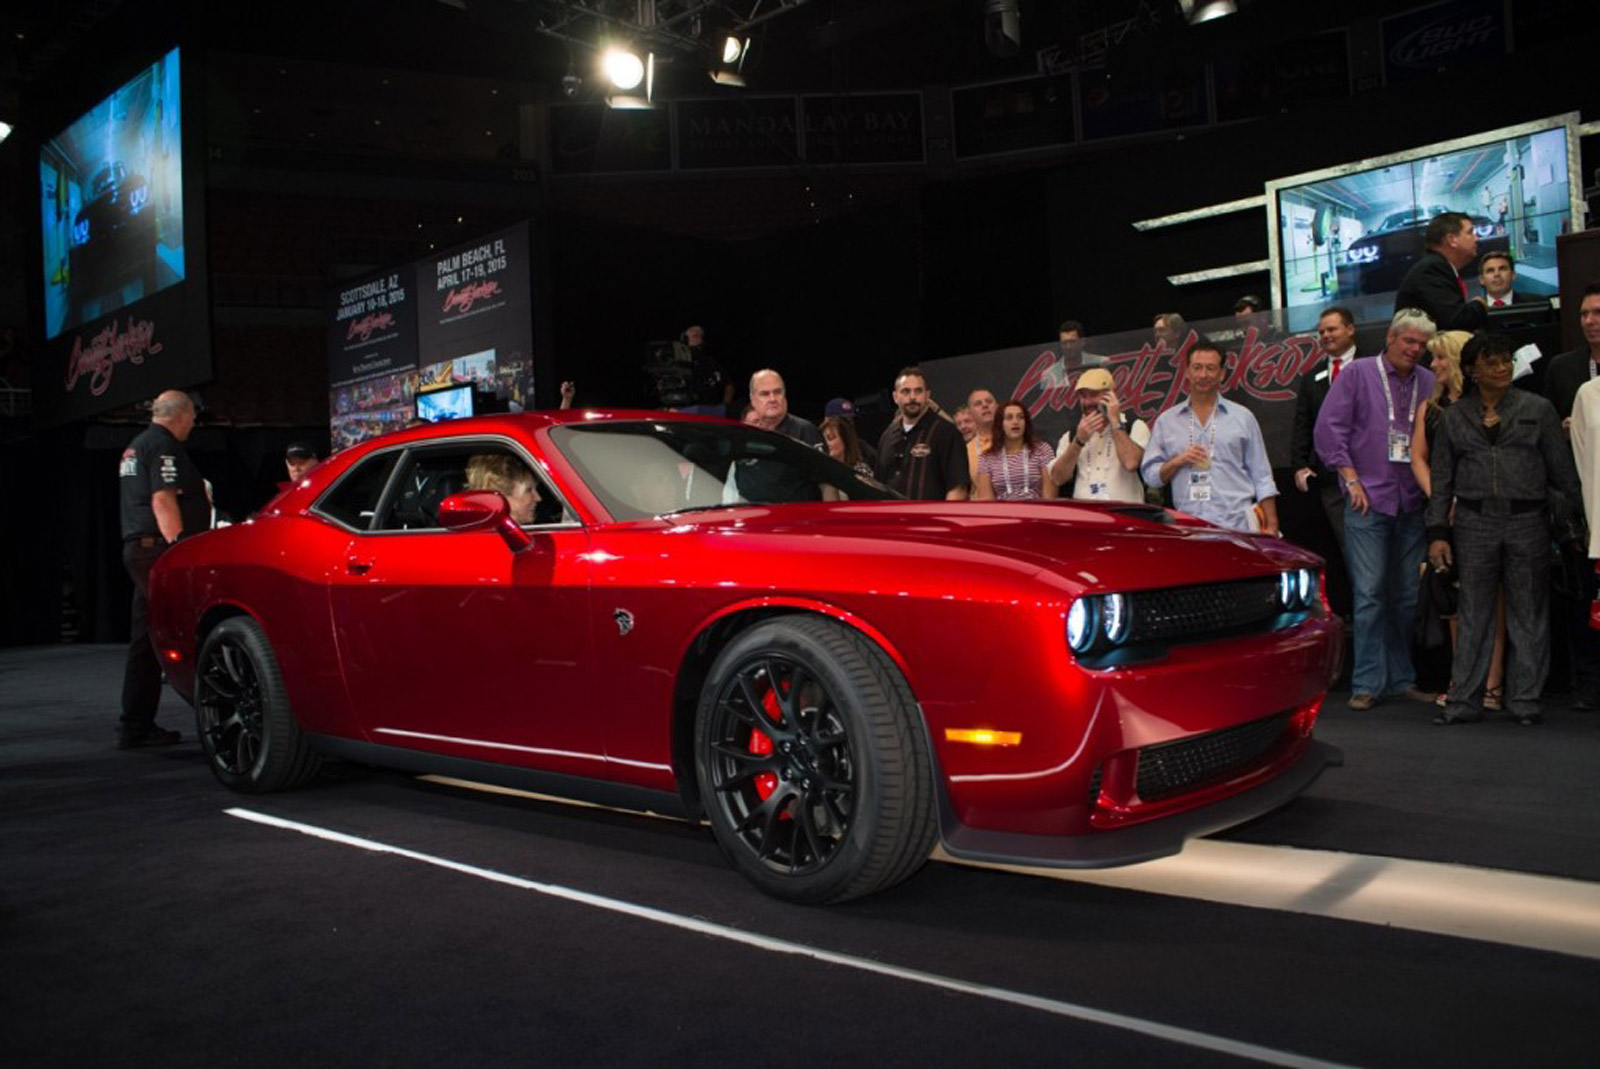 2015 ford mustang tesla vs iowa first challenger srt hellcat what s new the car connection. Black Bedroom Furniture Sets. Home Design Ideas